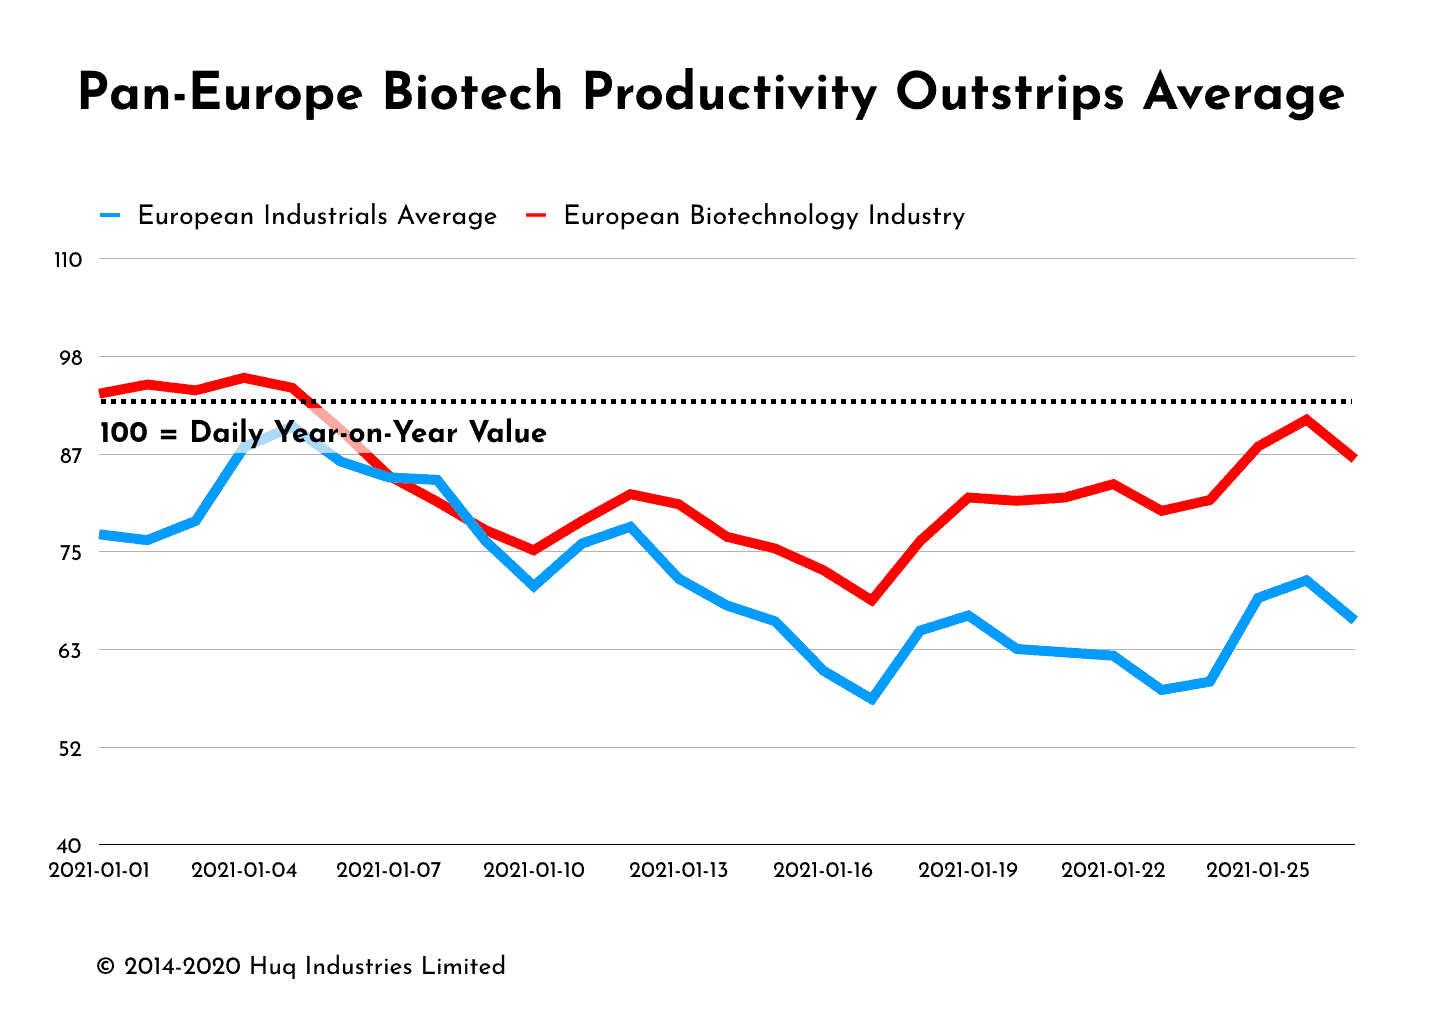 Biotech productivity outstrips industrial average